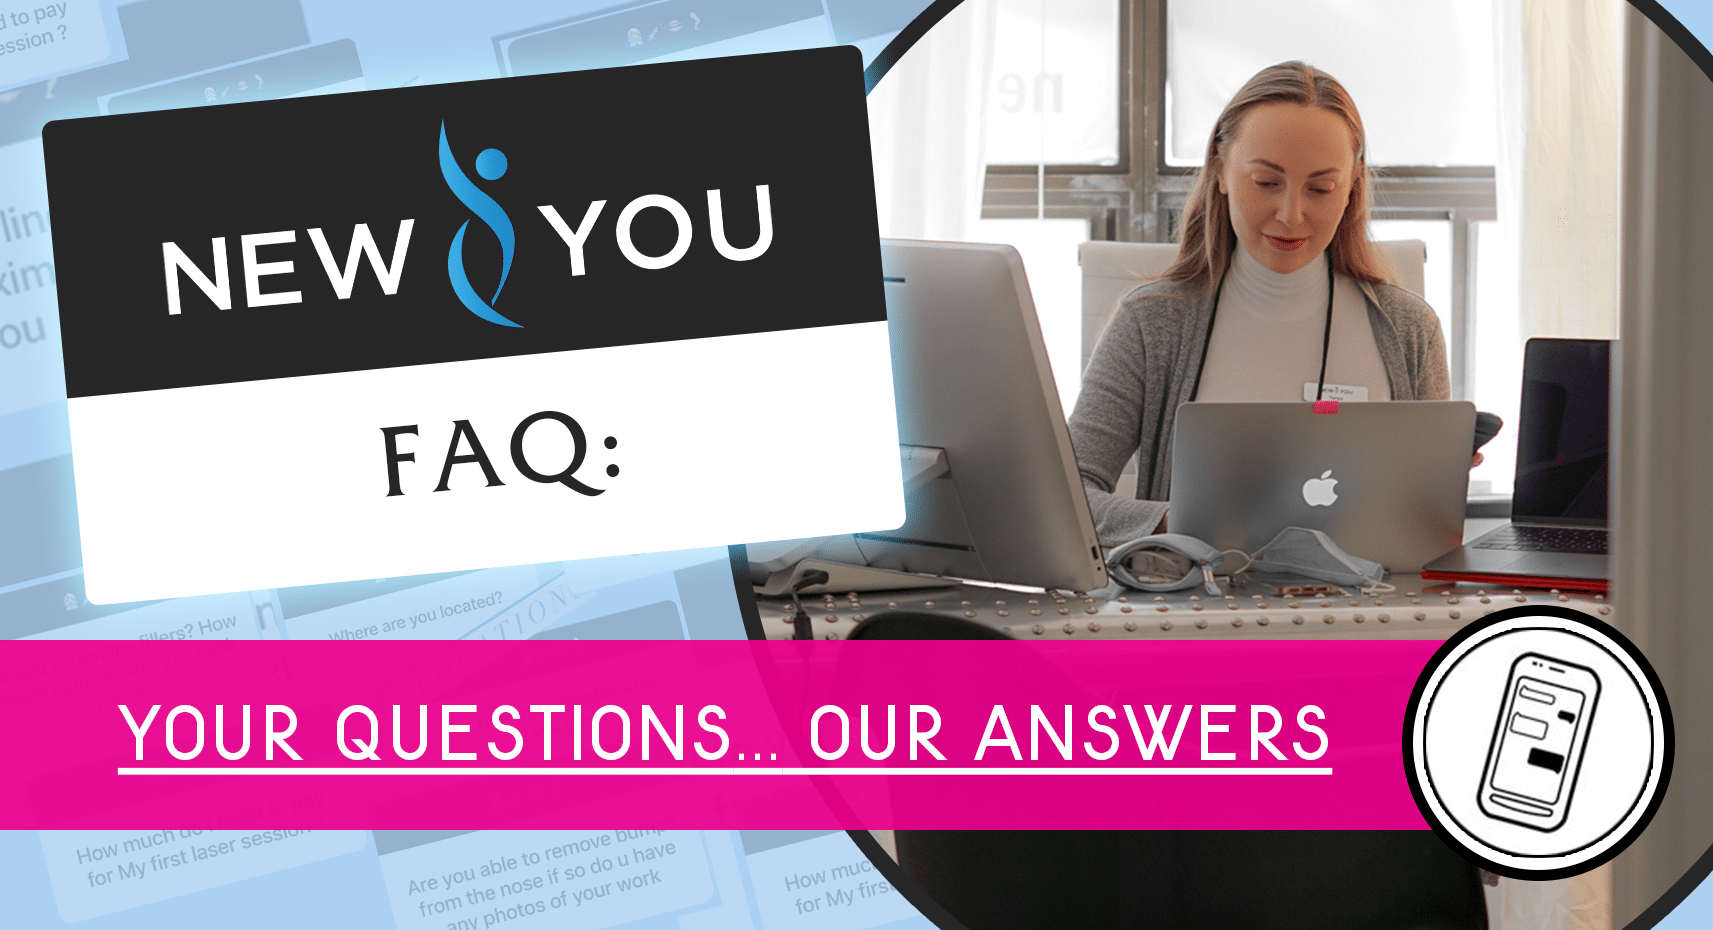 Answering Your Questions: (Jawline Fillers, Bodisculpting, Rhinoplasty, Laser Hair & Locations)